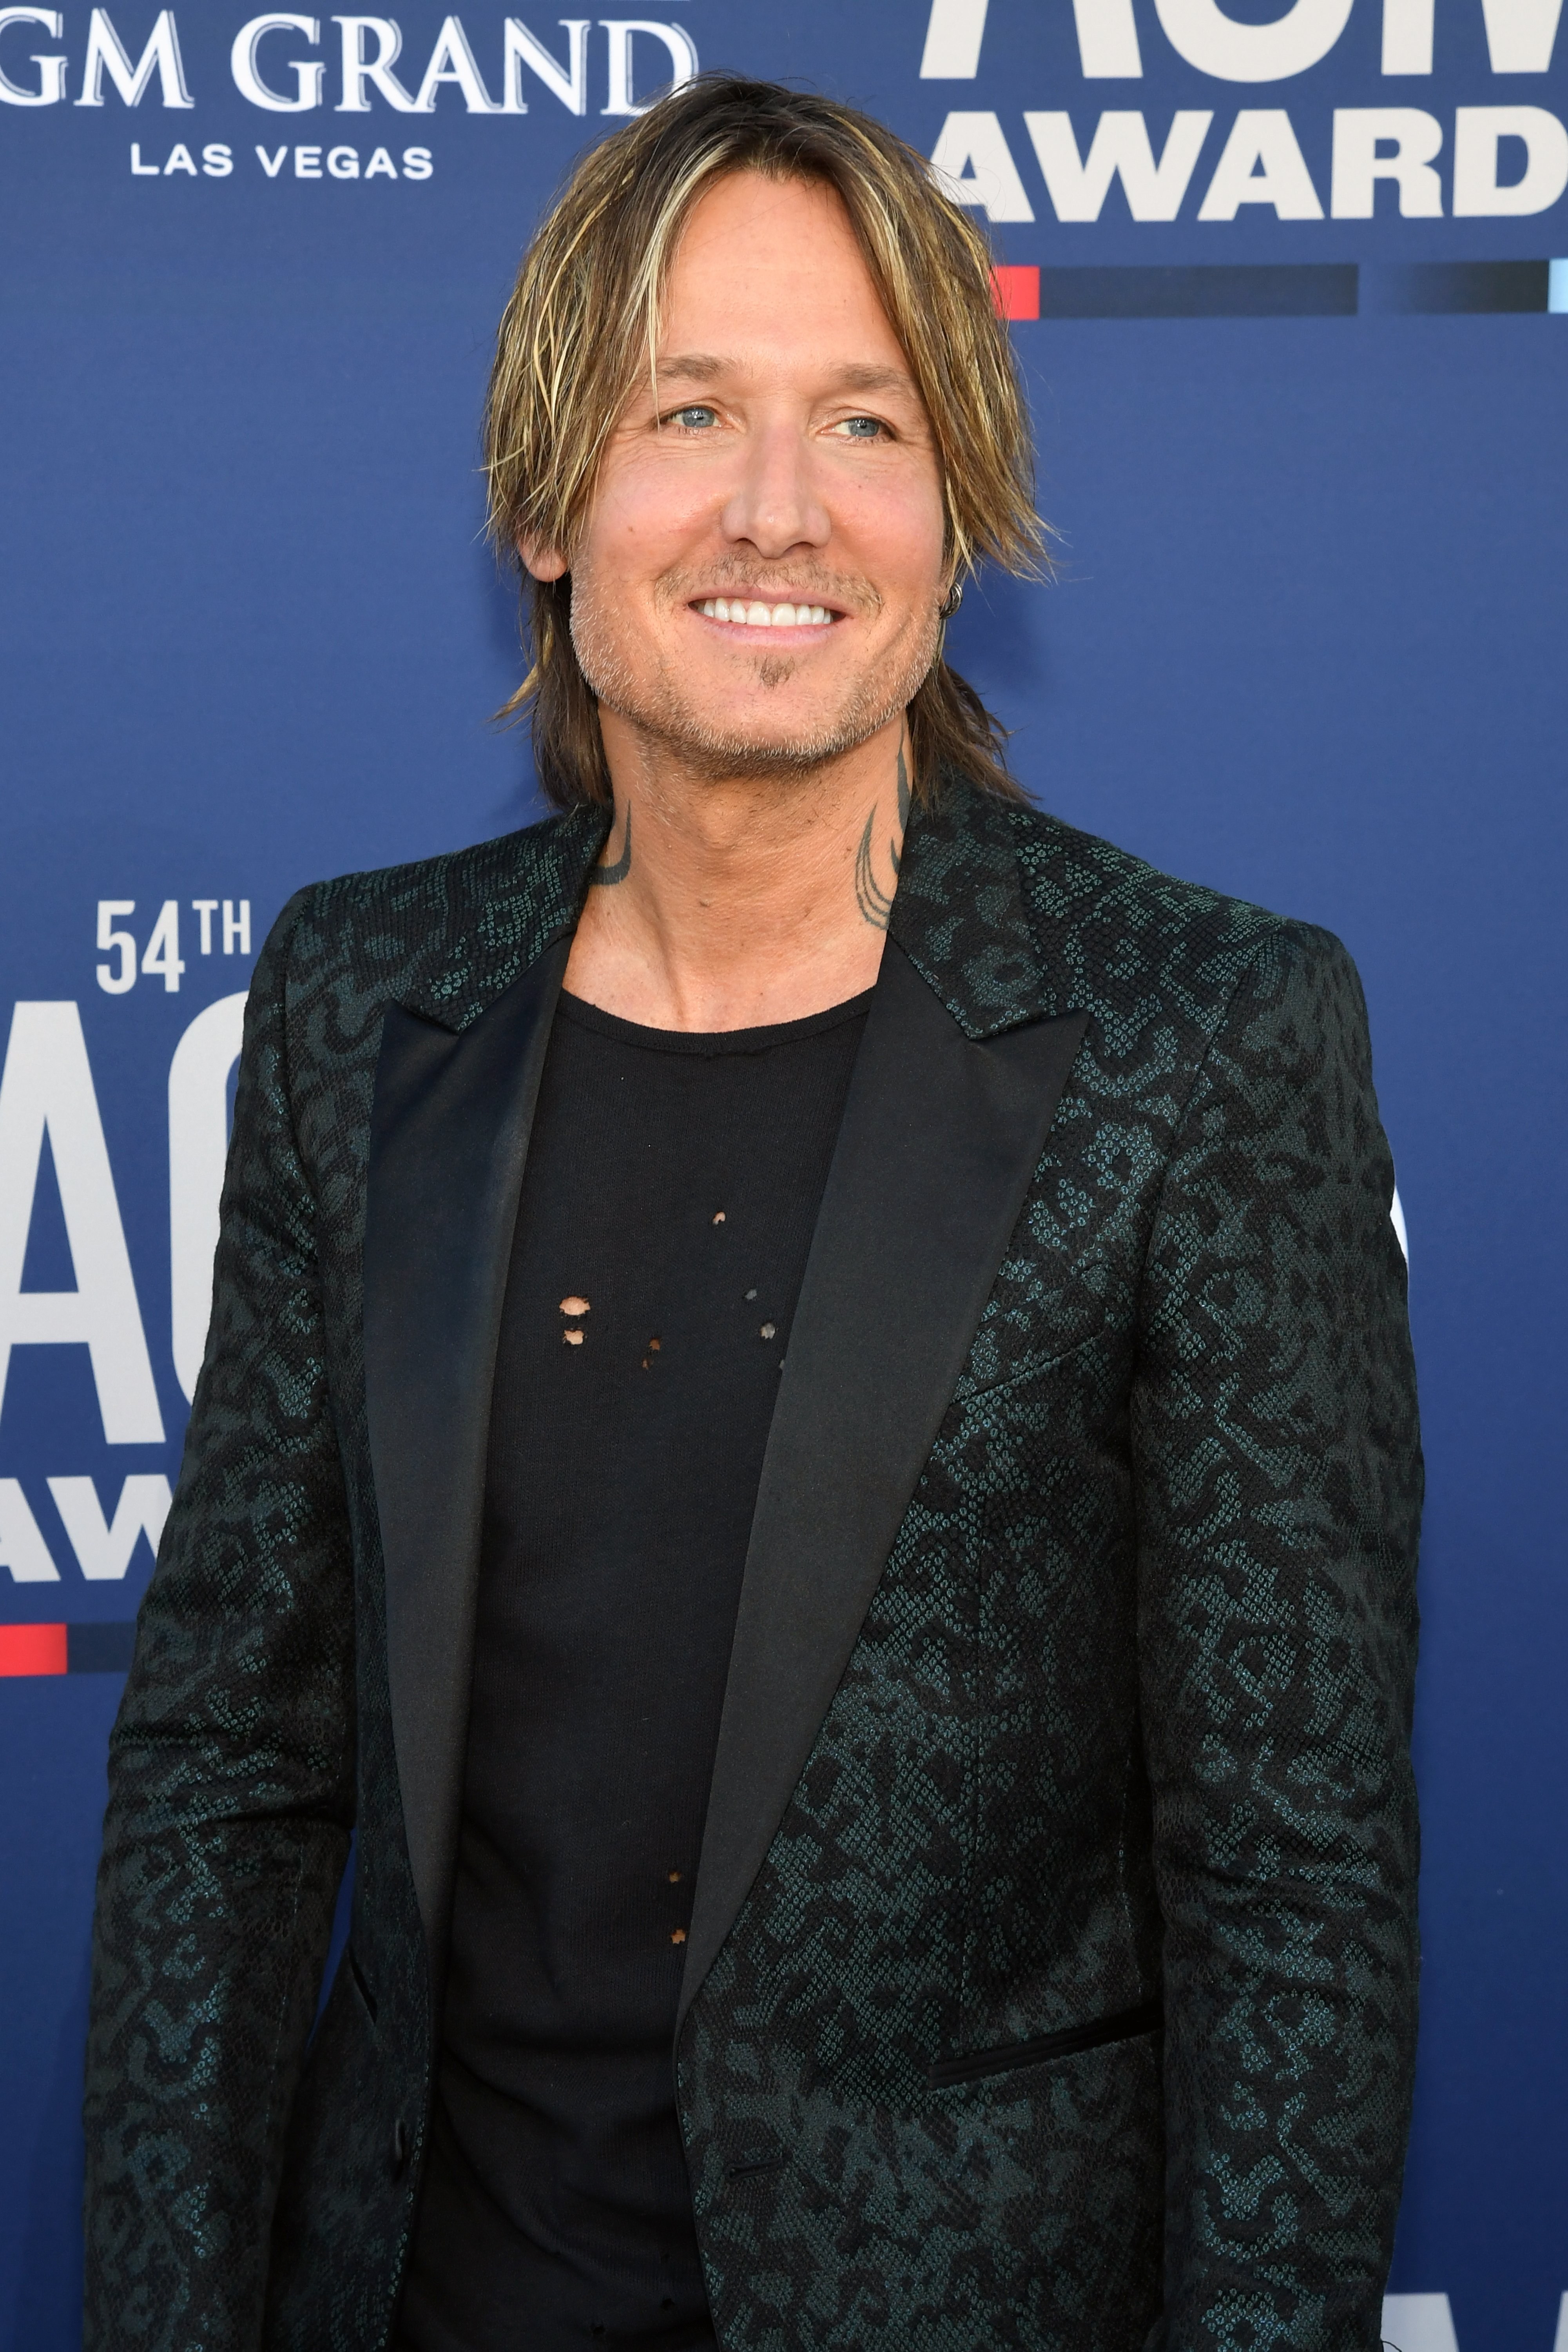 Keith Urban at the 54th Academy Of Country Music Awards in Las Vegas, Nevada | Photo: Getty Images